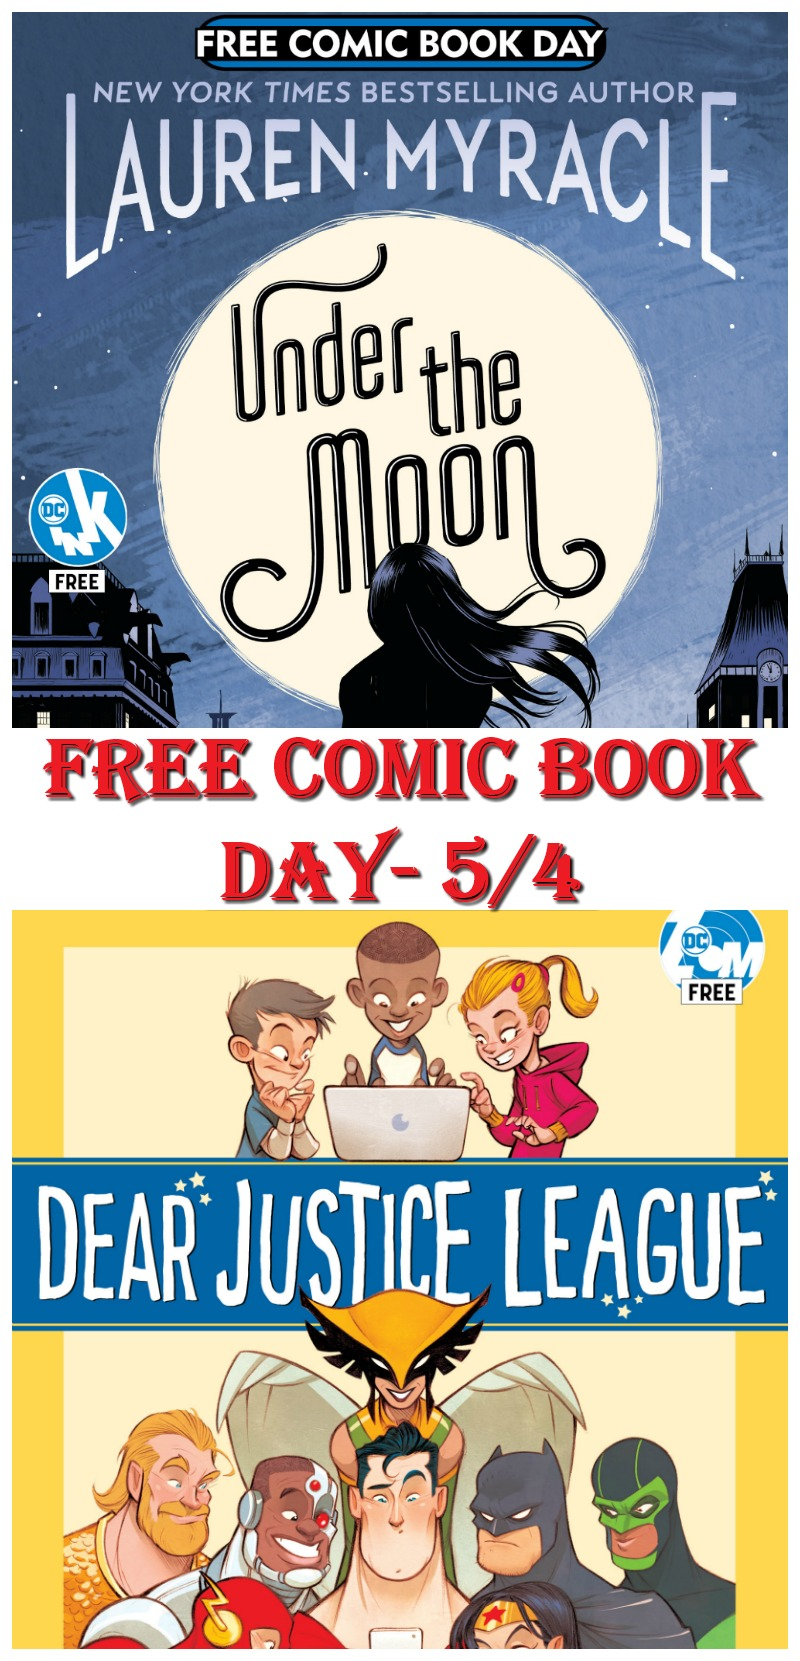 Free Comic Book Day is May 4th!  Don't miss it! #FCBD